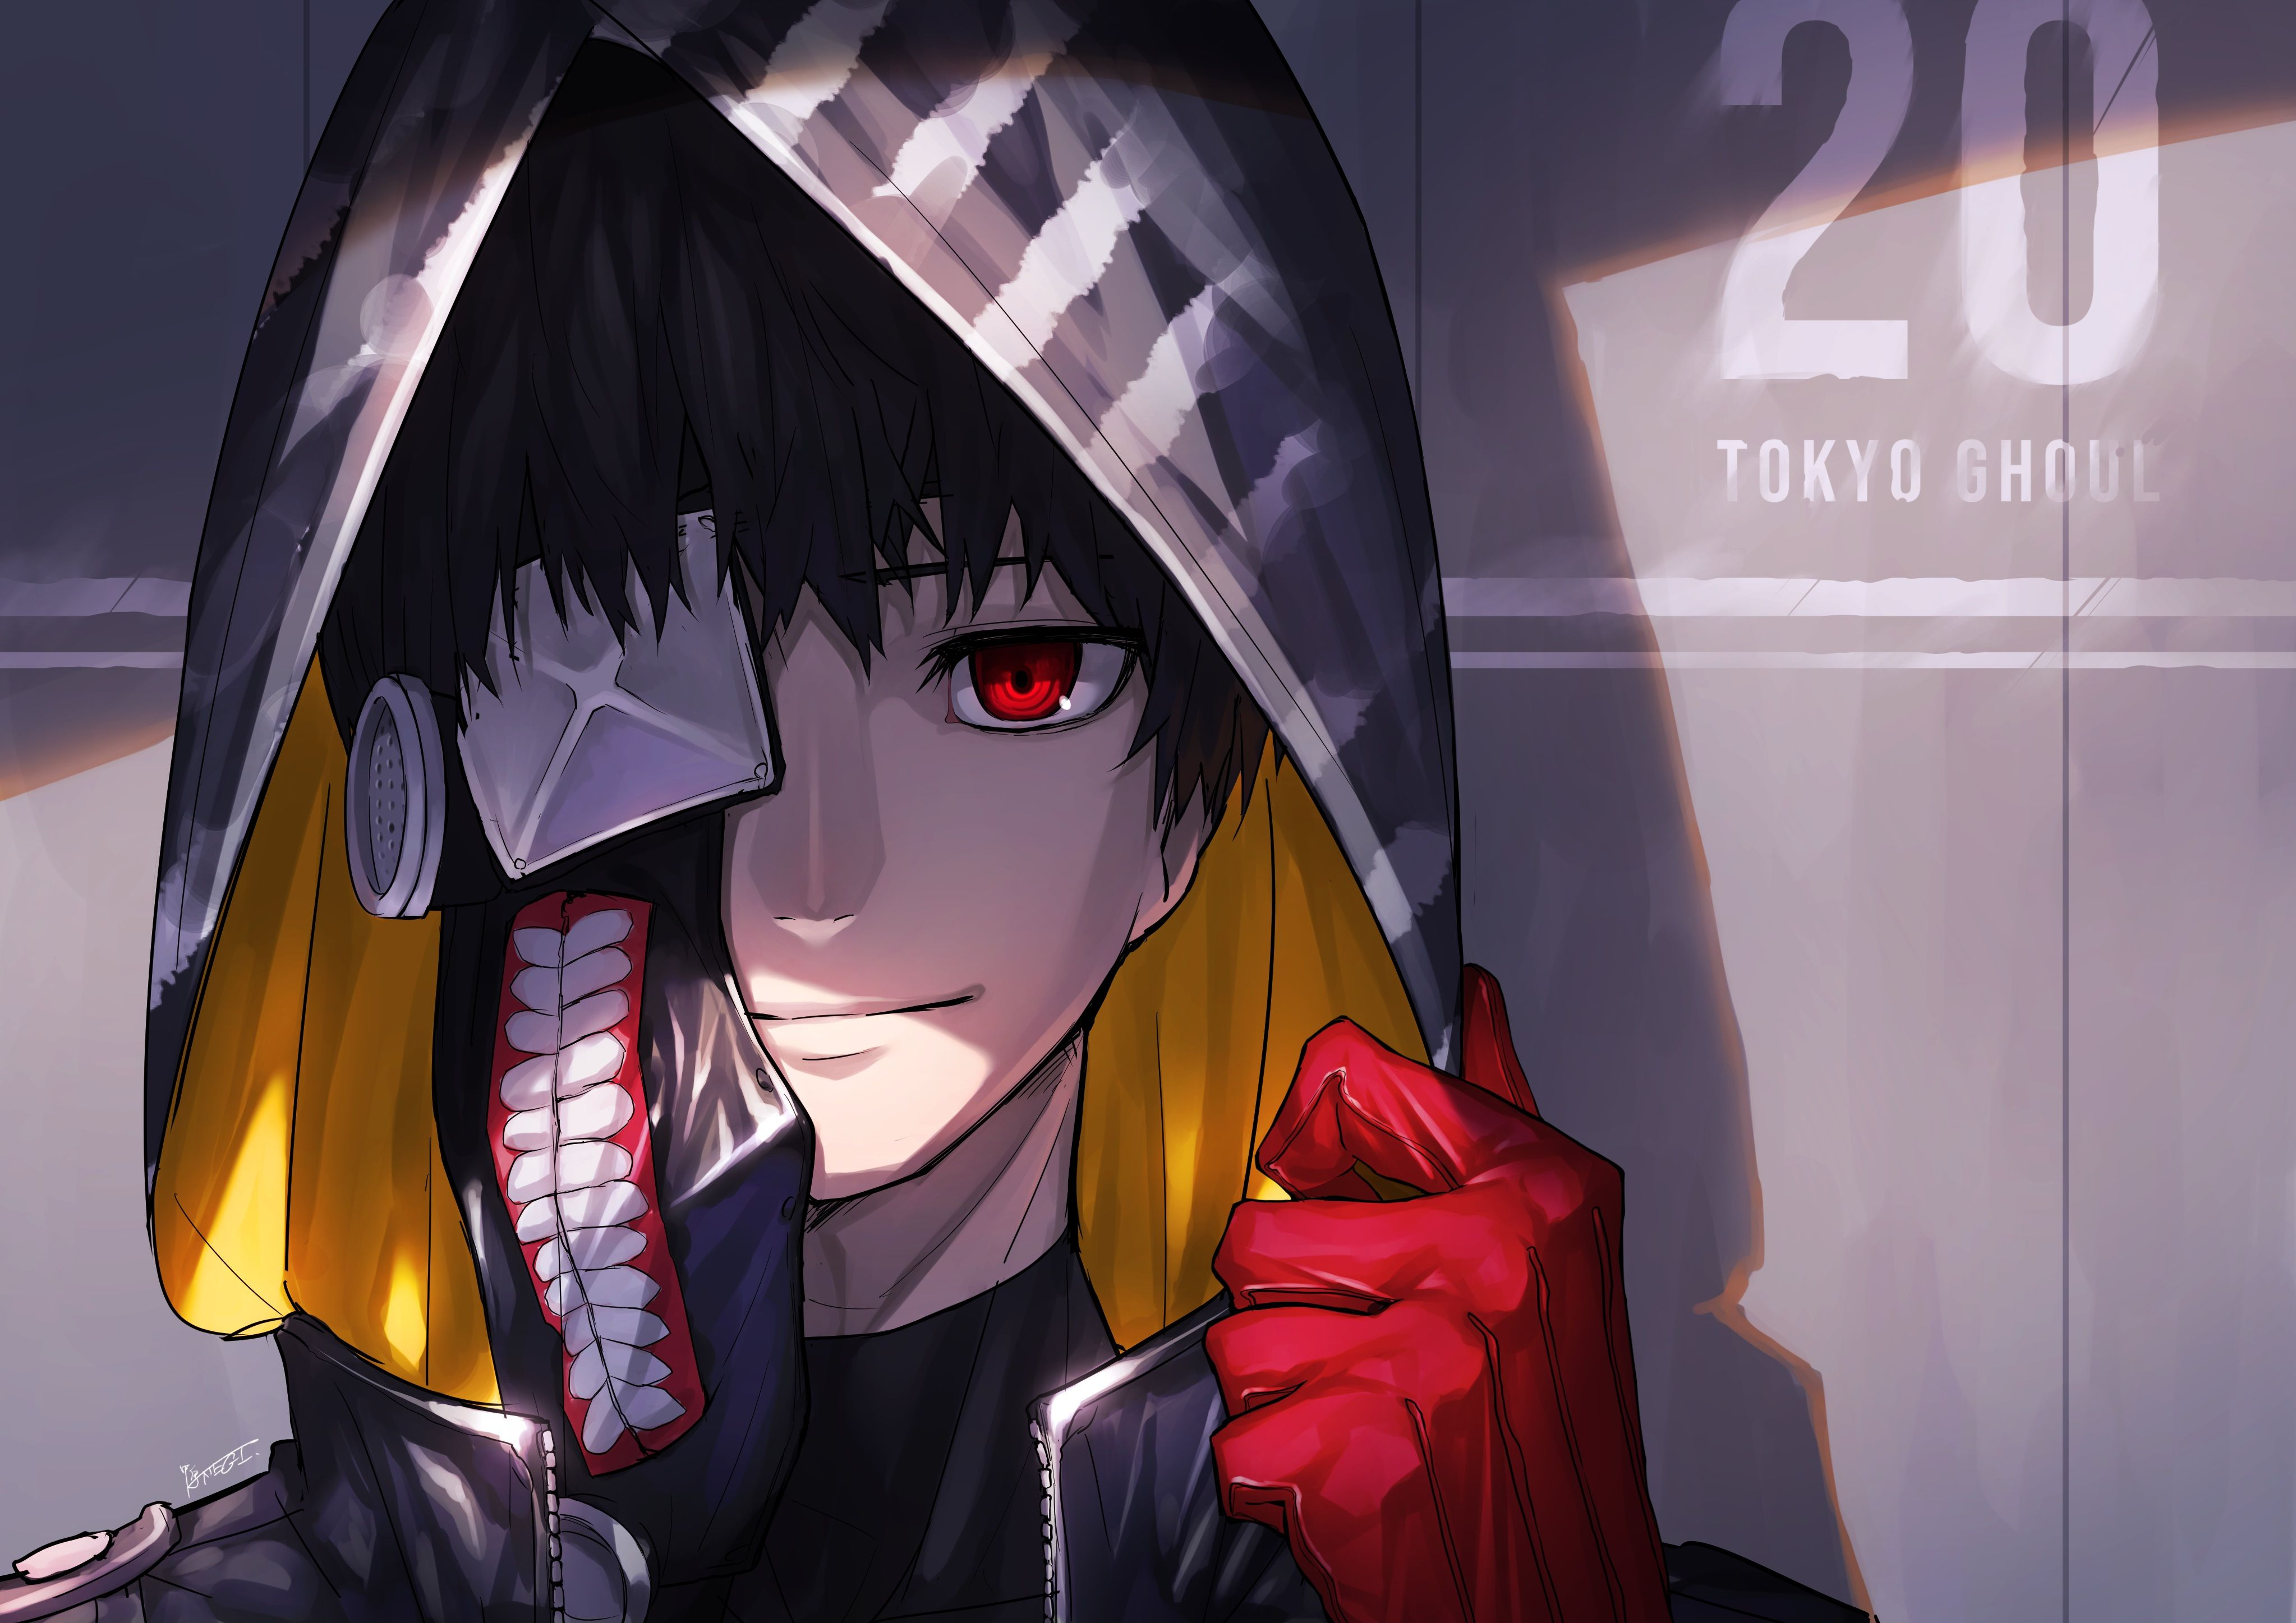 Pin On 4k Ultra Hd Tokyo Ghoul Wallpapers Download wallpaper anime ungu